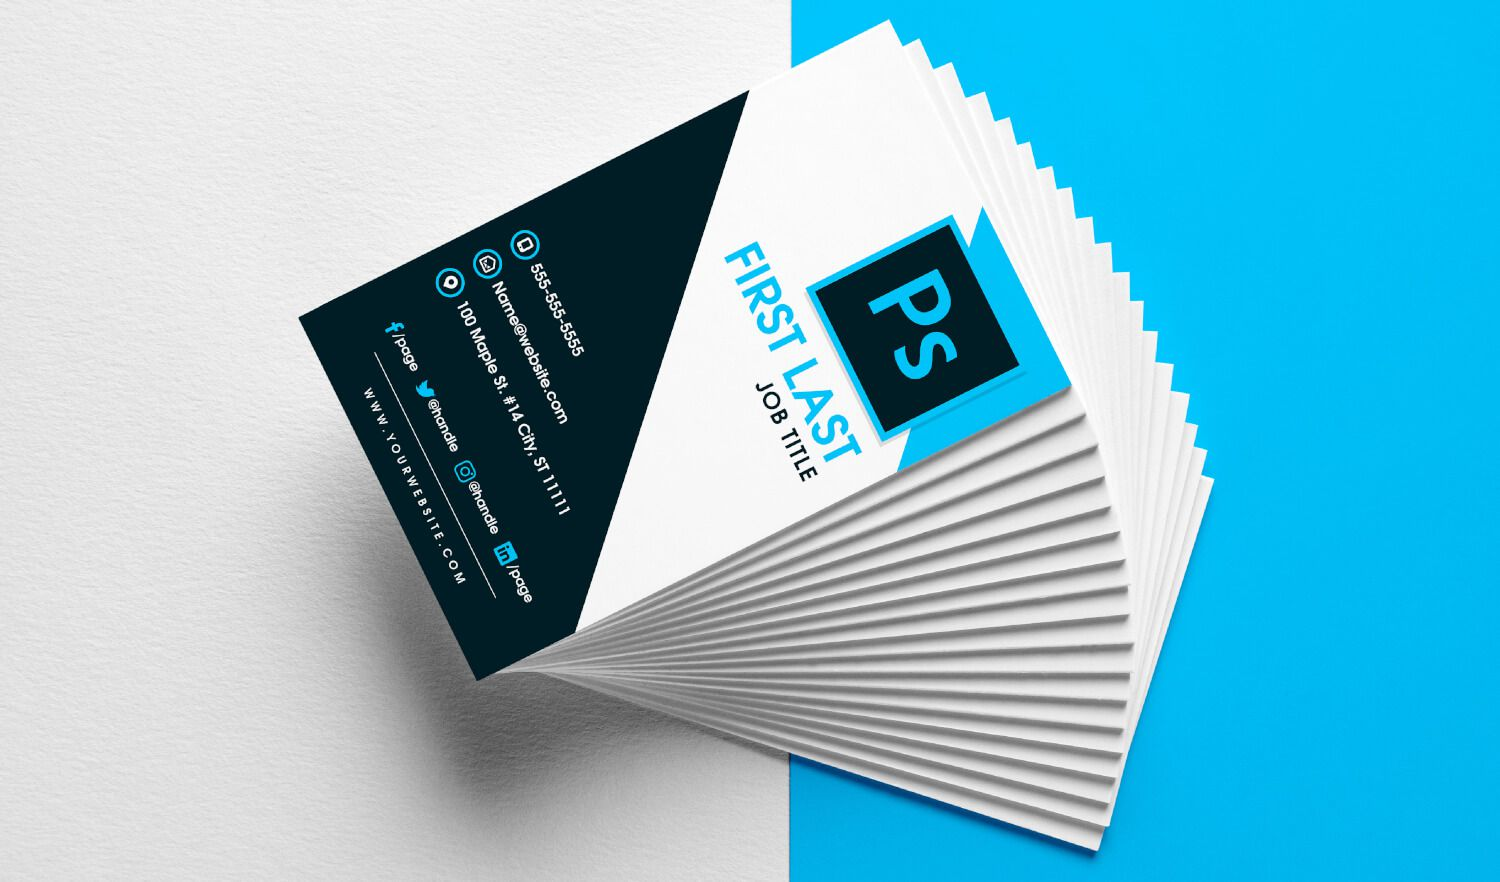 008 Unbelievable Psd Busines Card Template Highest Quality  Computer Free With BleedFull